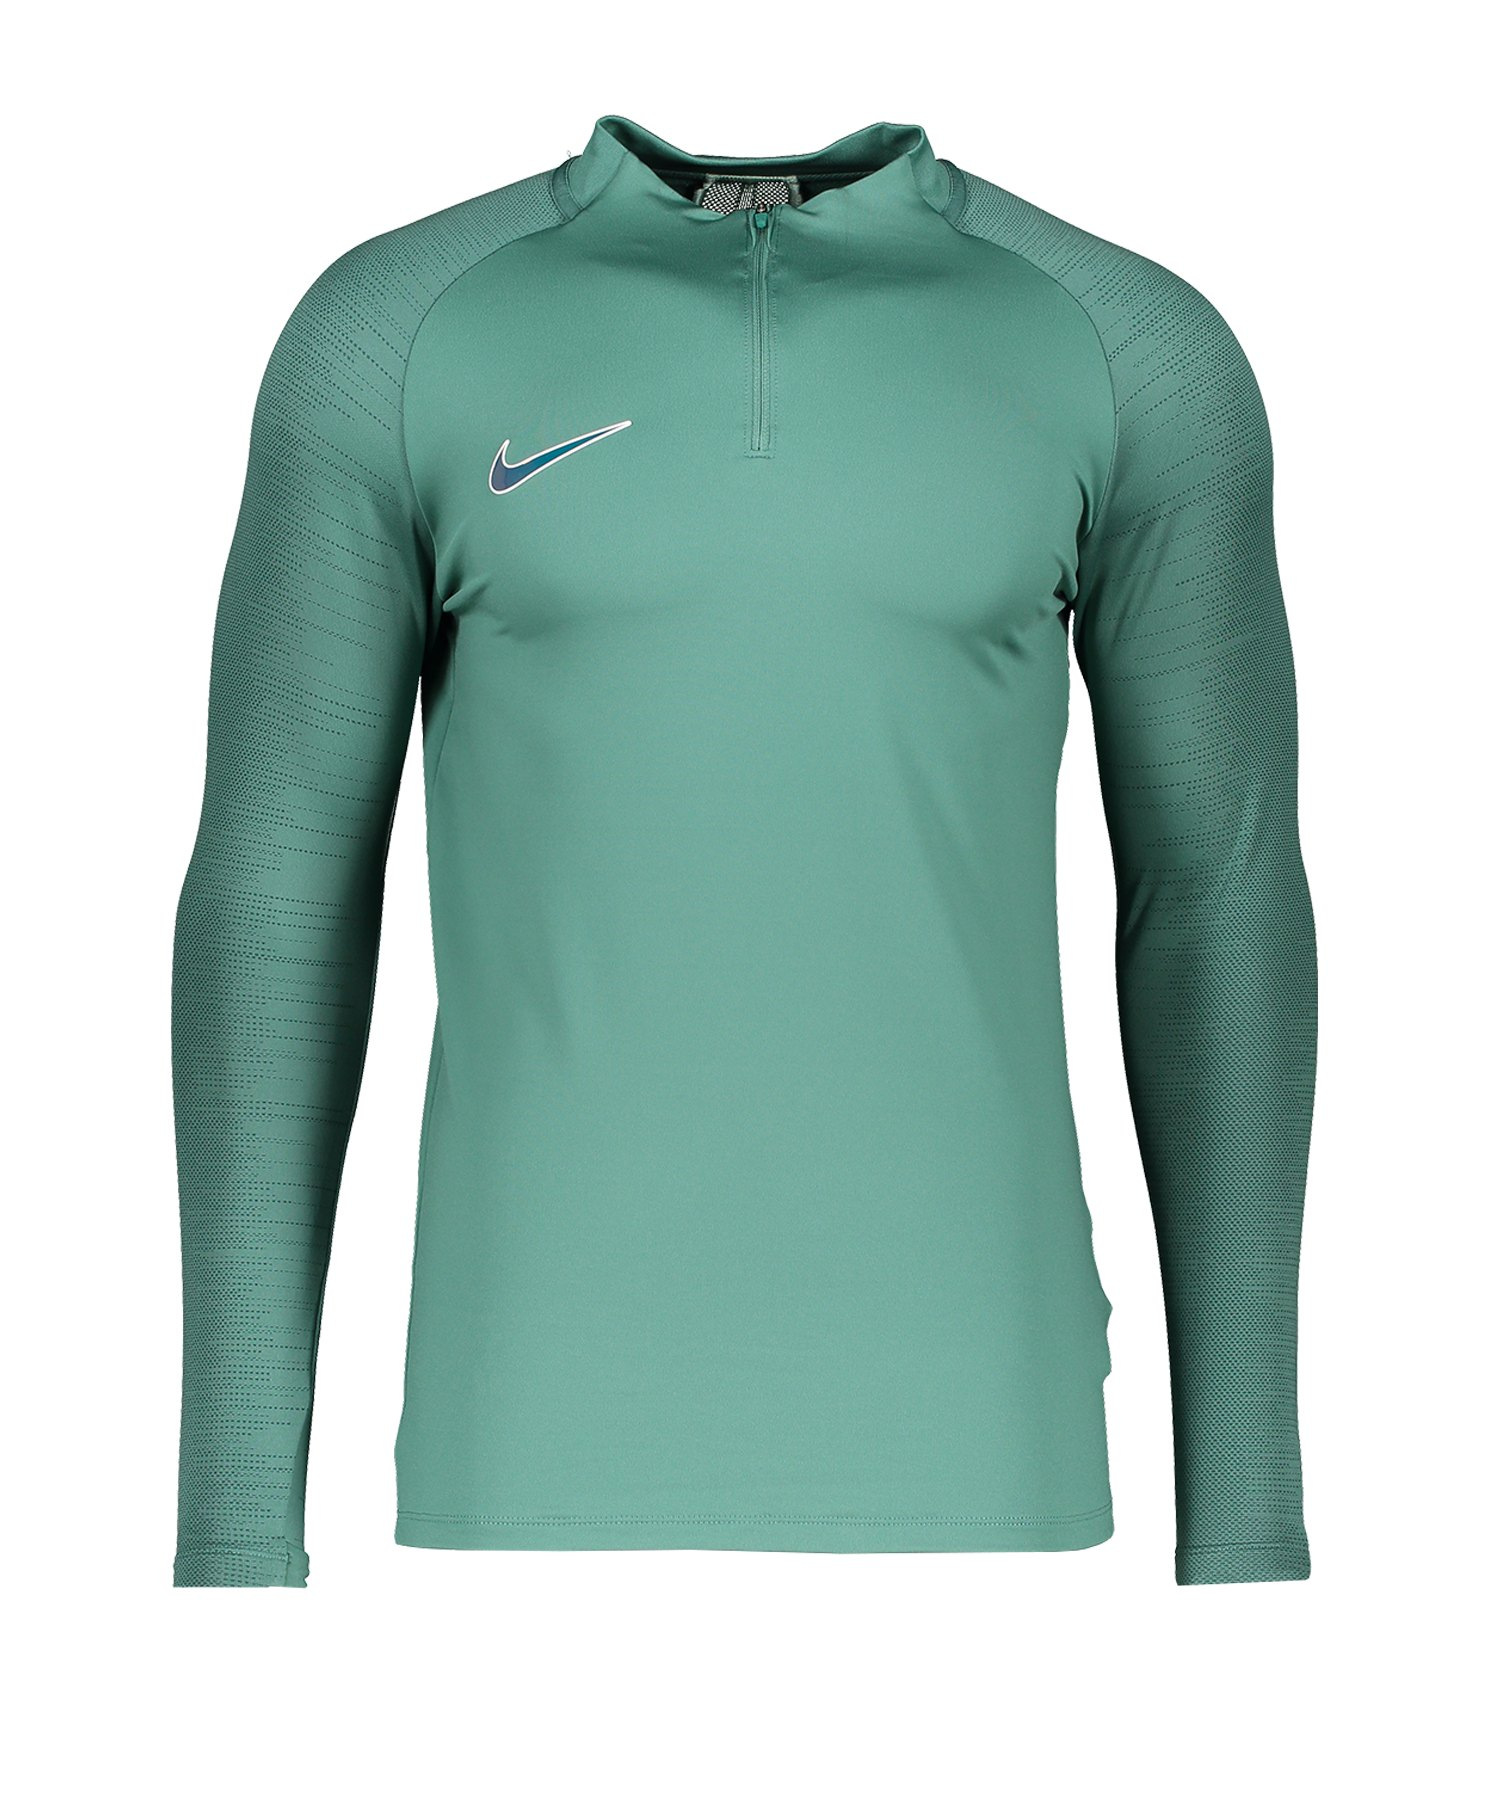 Nike Dri-FIT Strike 1/4 Zip Drill Top Grün F362 - gruen